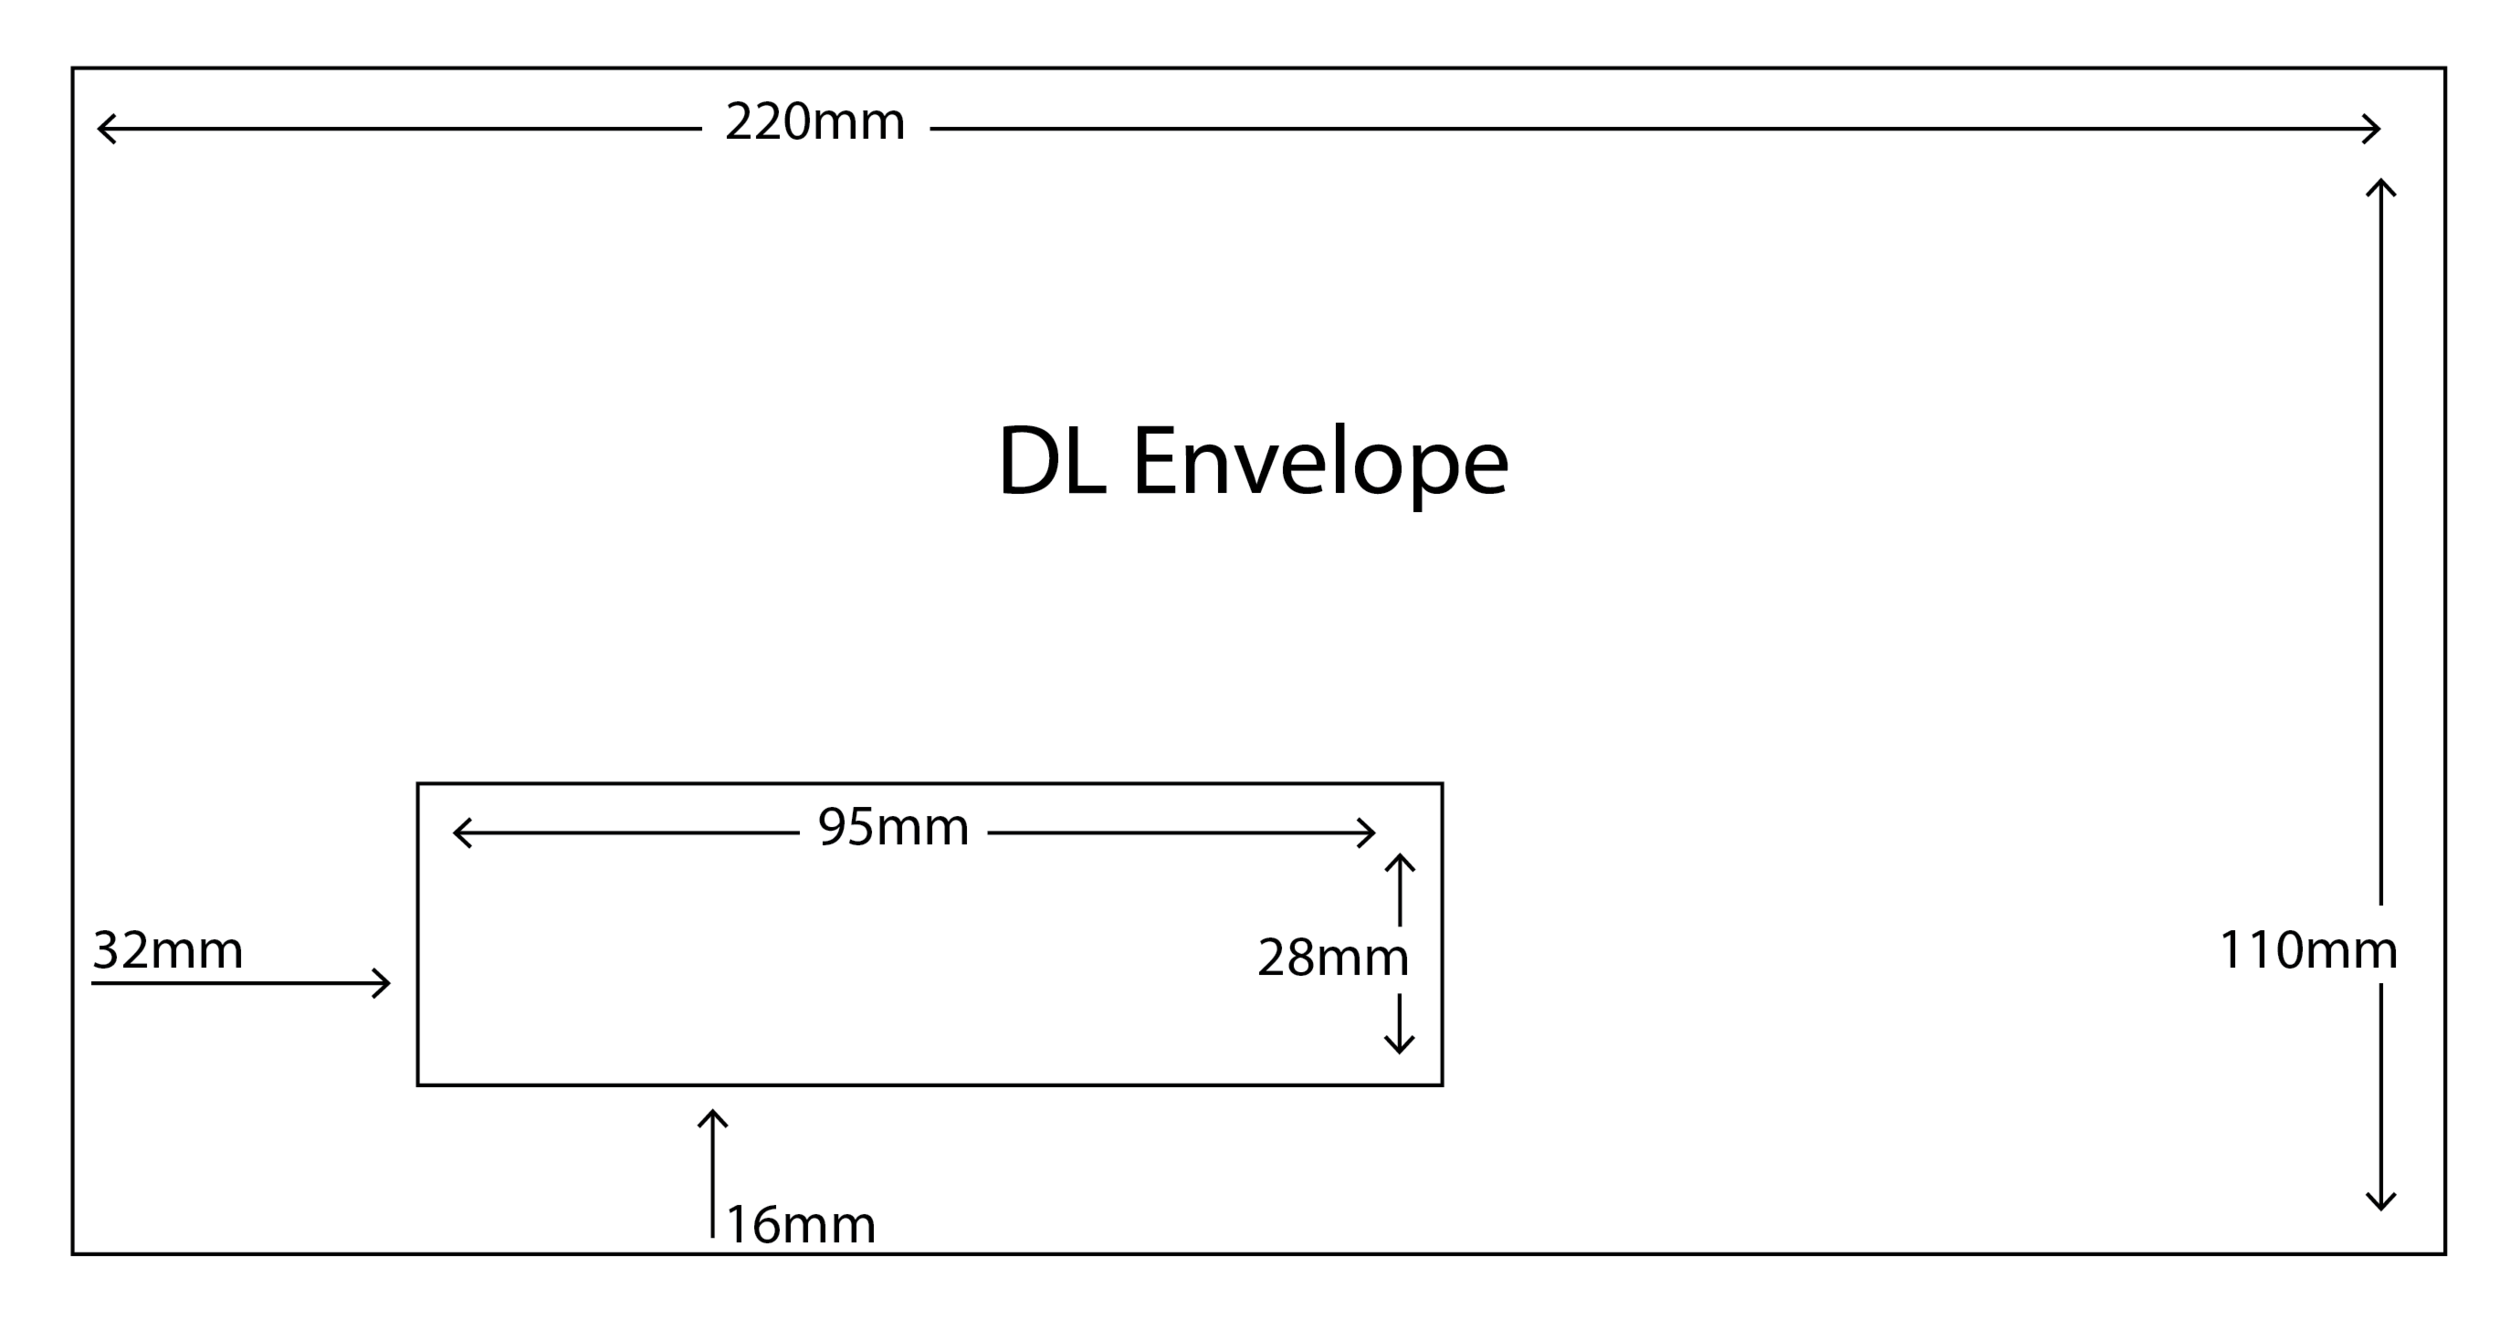 DL Envelope with standard window size